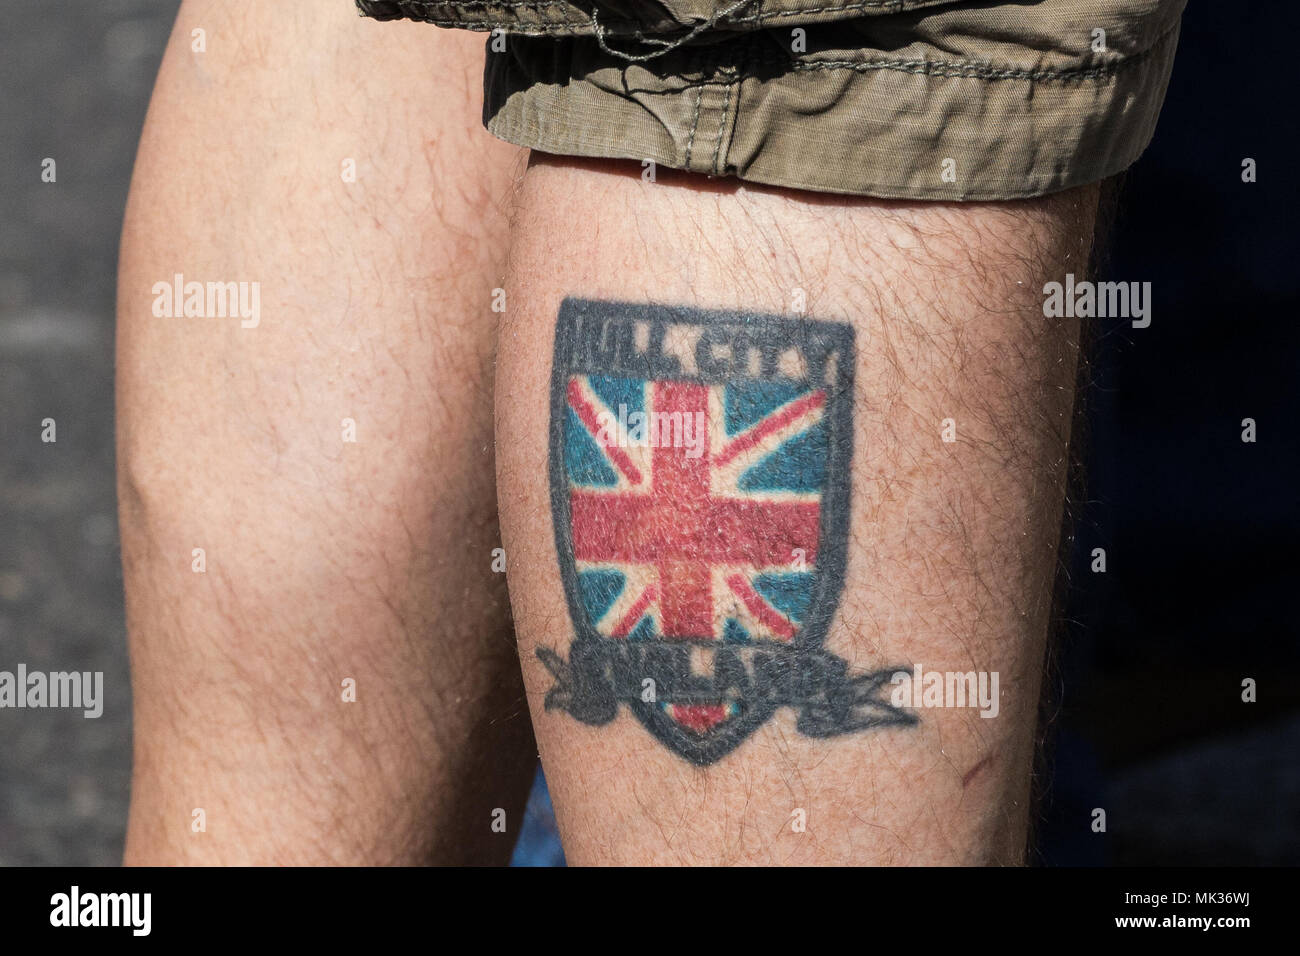 af438e802 London, UK. 6th May, 2018. A tattoo on the leg of a supporter of the ...